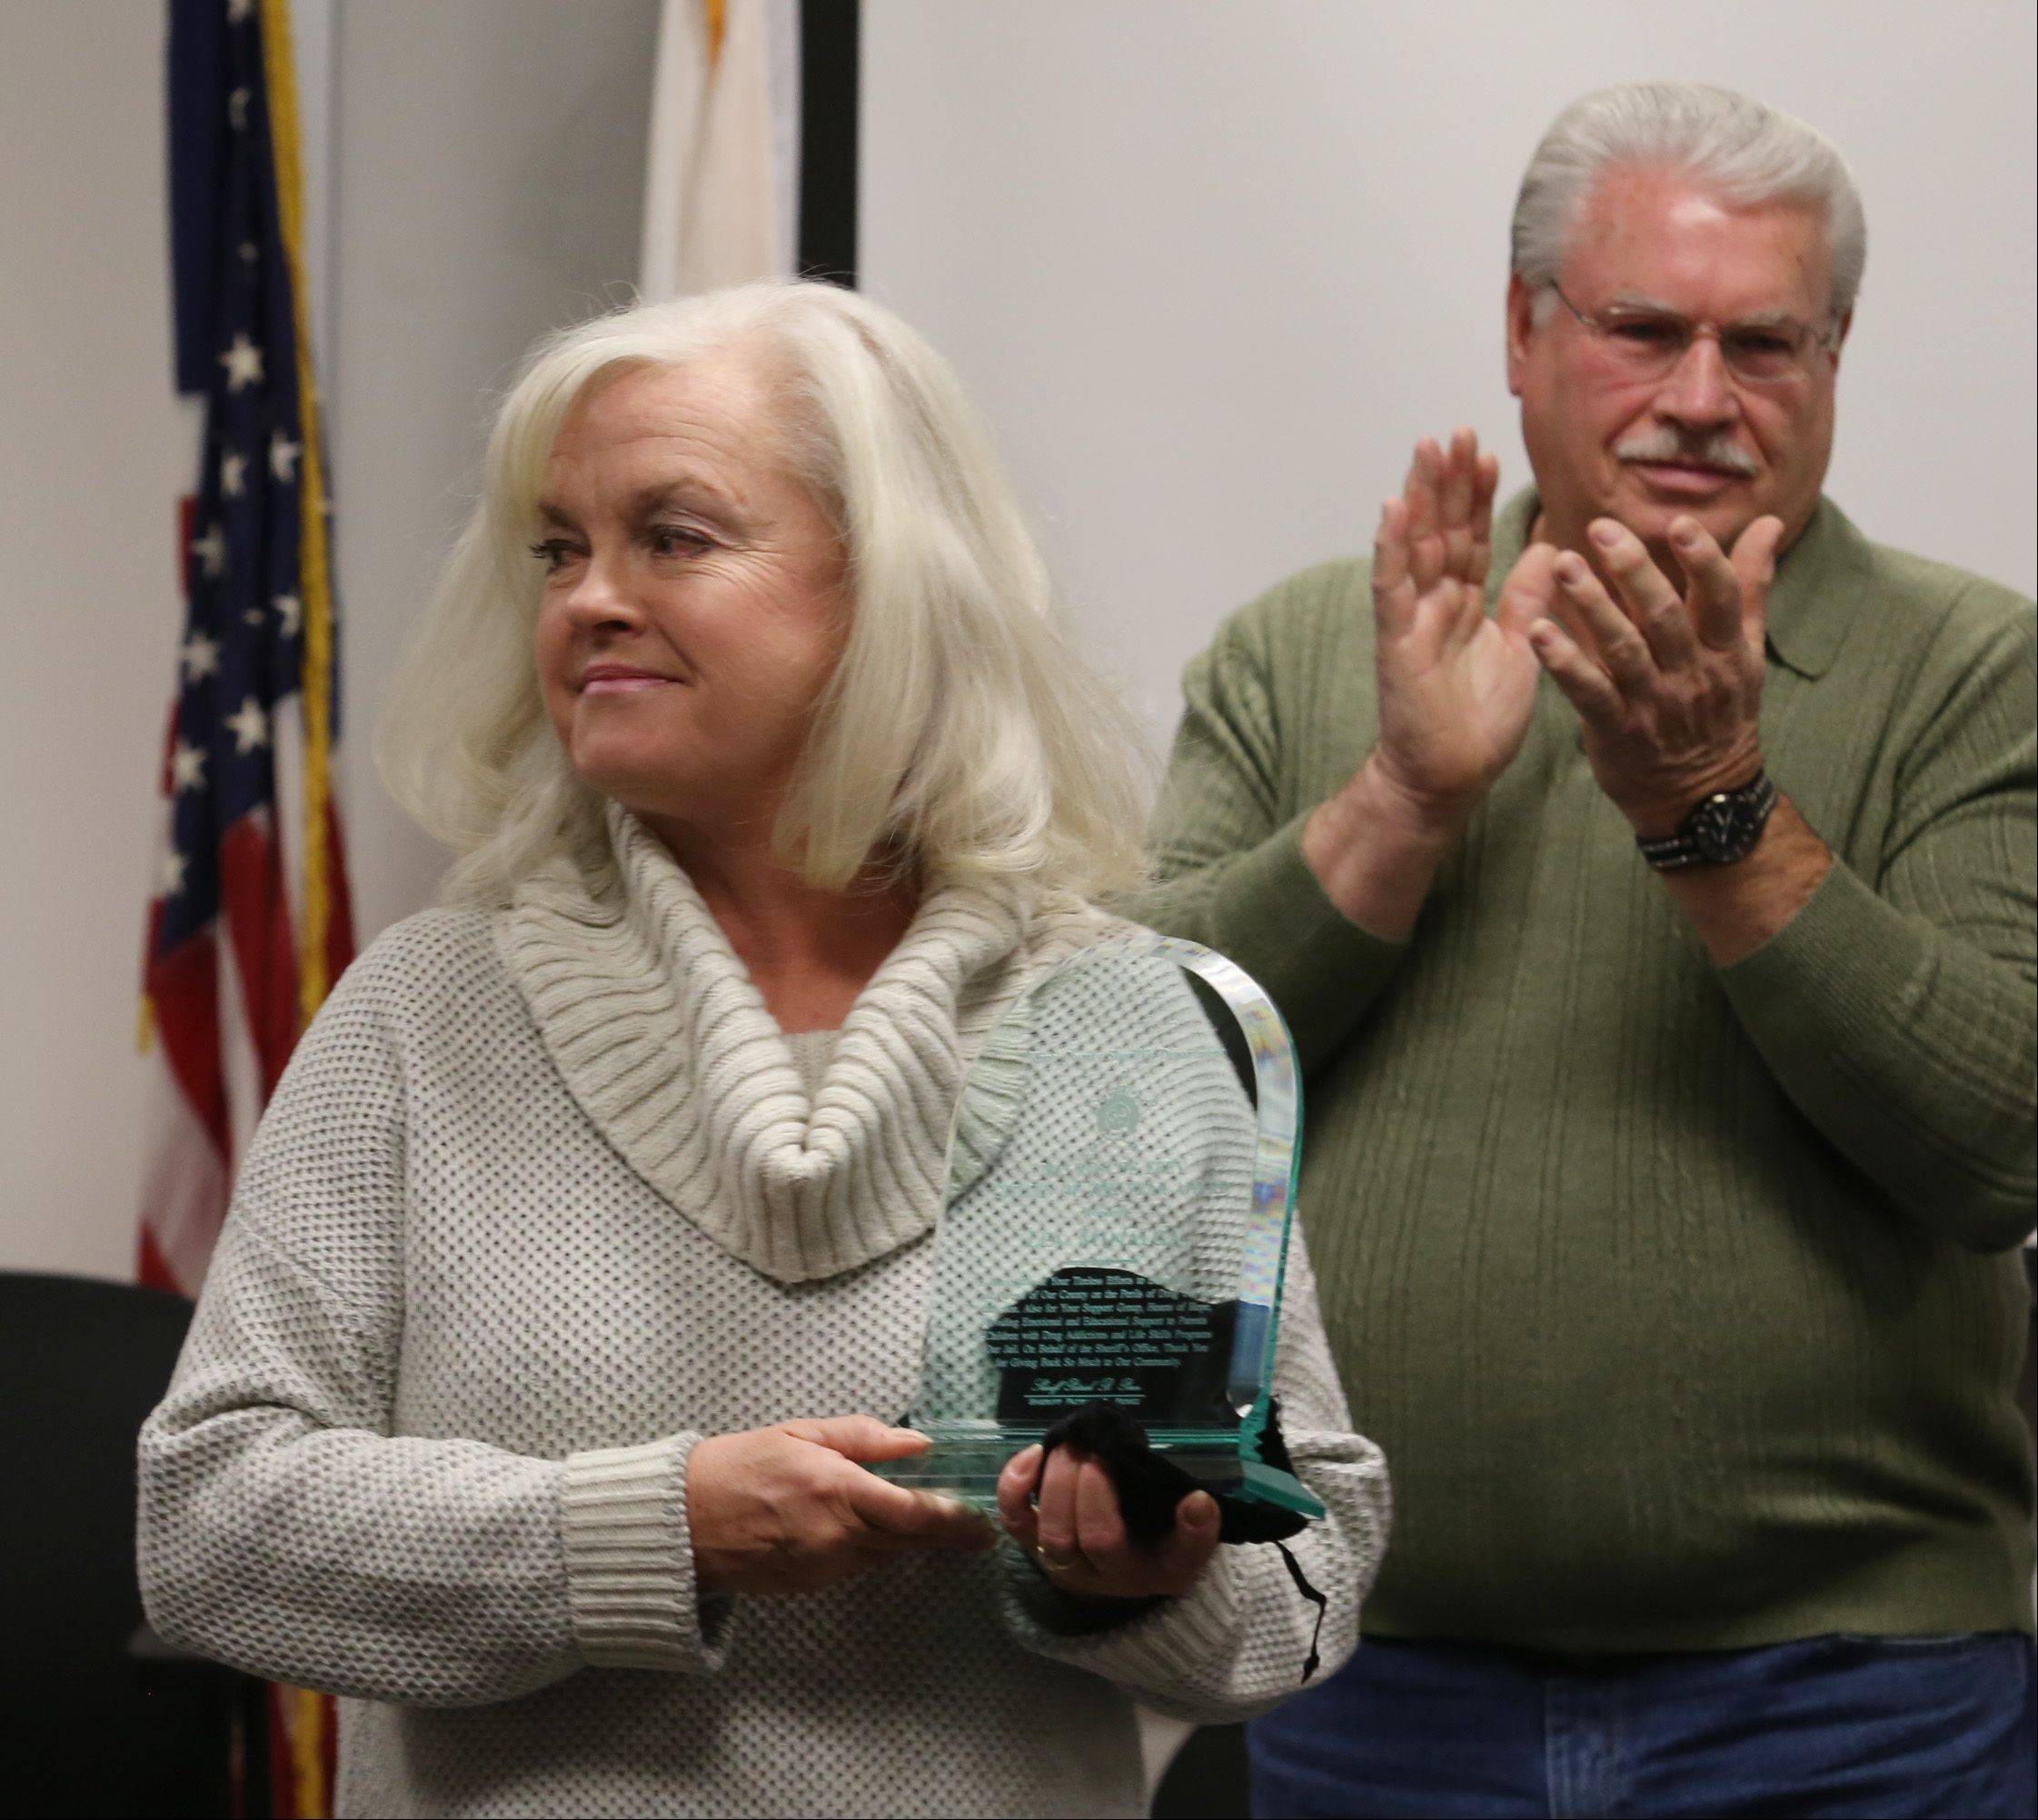 Lea Minalga of St. Charles accepts her award Thursday as Richard Ebey, son of the late Roscoe Ebey, applauds in the background during the annual Roscoe Ebey Citizen of the Year ceremony at the Kane County Sheriff's Department in St. Charles. Geneva residents Lorraine Stahl and Christine Propheter also shared in the award.